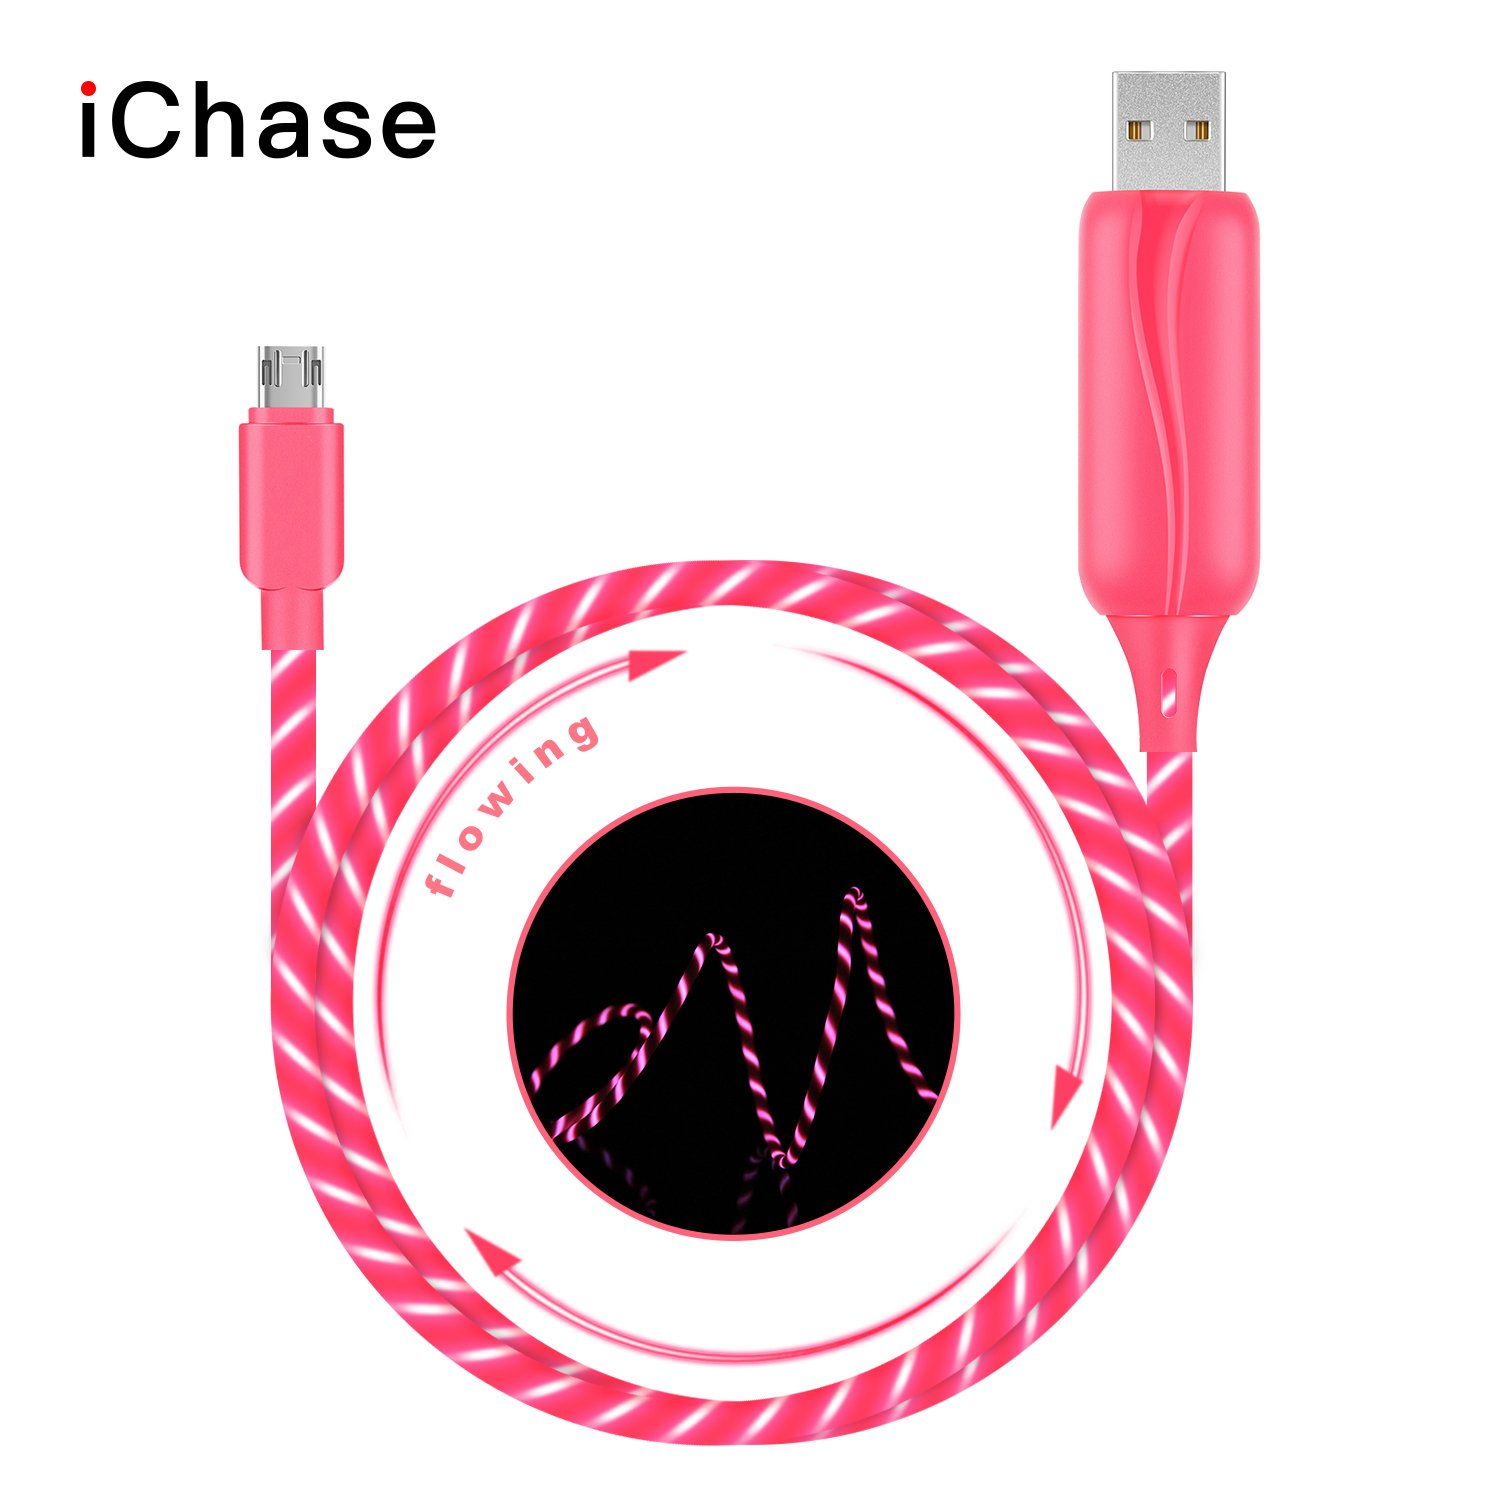 iChase LED Micro USB Cable, Updated 3ft 360 Degree Visible Flowing EL Light Up 180 Degree Double-Sided Plug Fast Charger Cable for Samsung ,HTC, Motorola, Sony and More Android Devices (Pink)